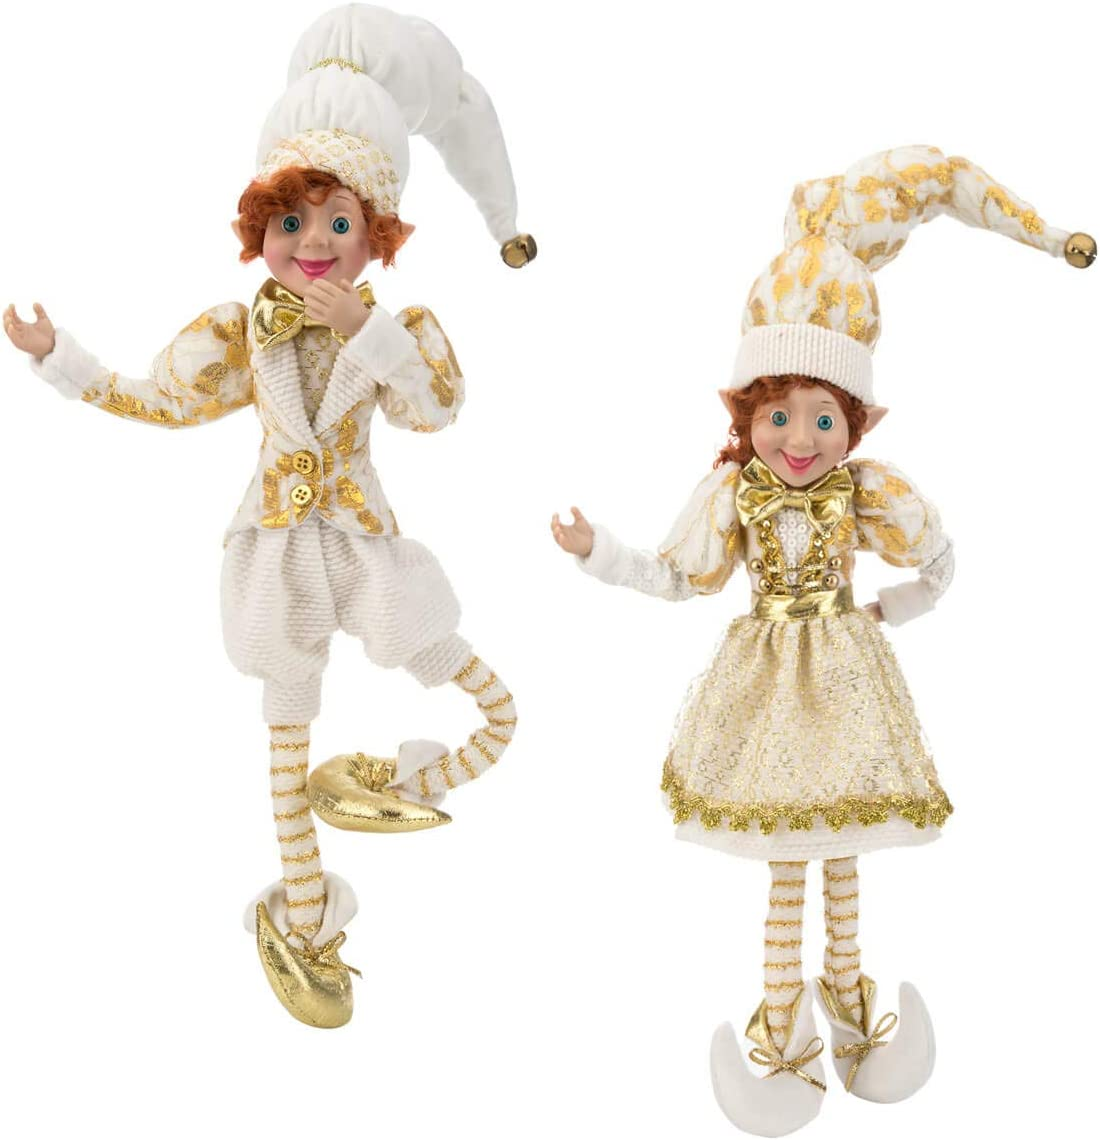 "ARCCI 26"" Christmas Elves Posable Elf Christmas Figure - Set of 2 Glitter Glod and White Posable Elf Christmas Figure, Xmas Holiday Party Home Decoration (White & Gold)"